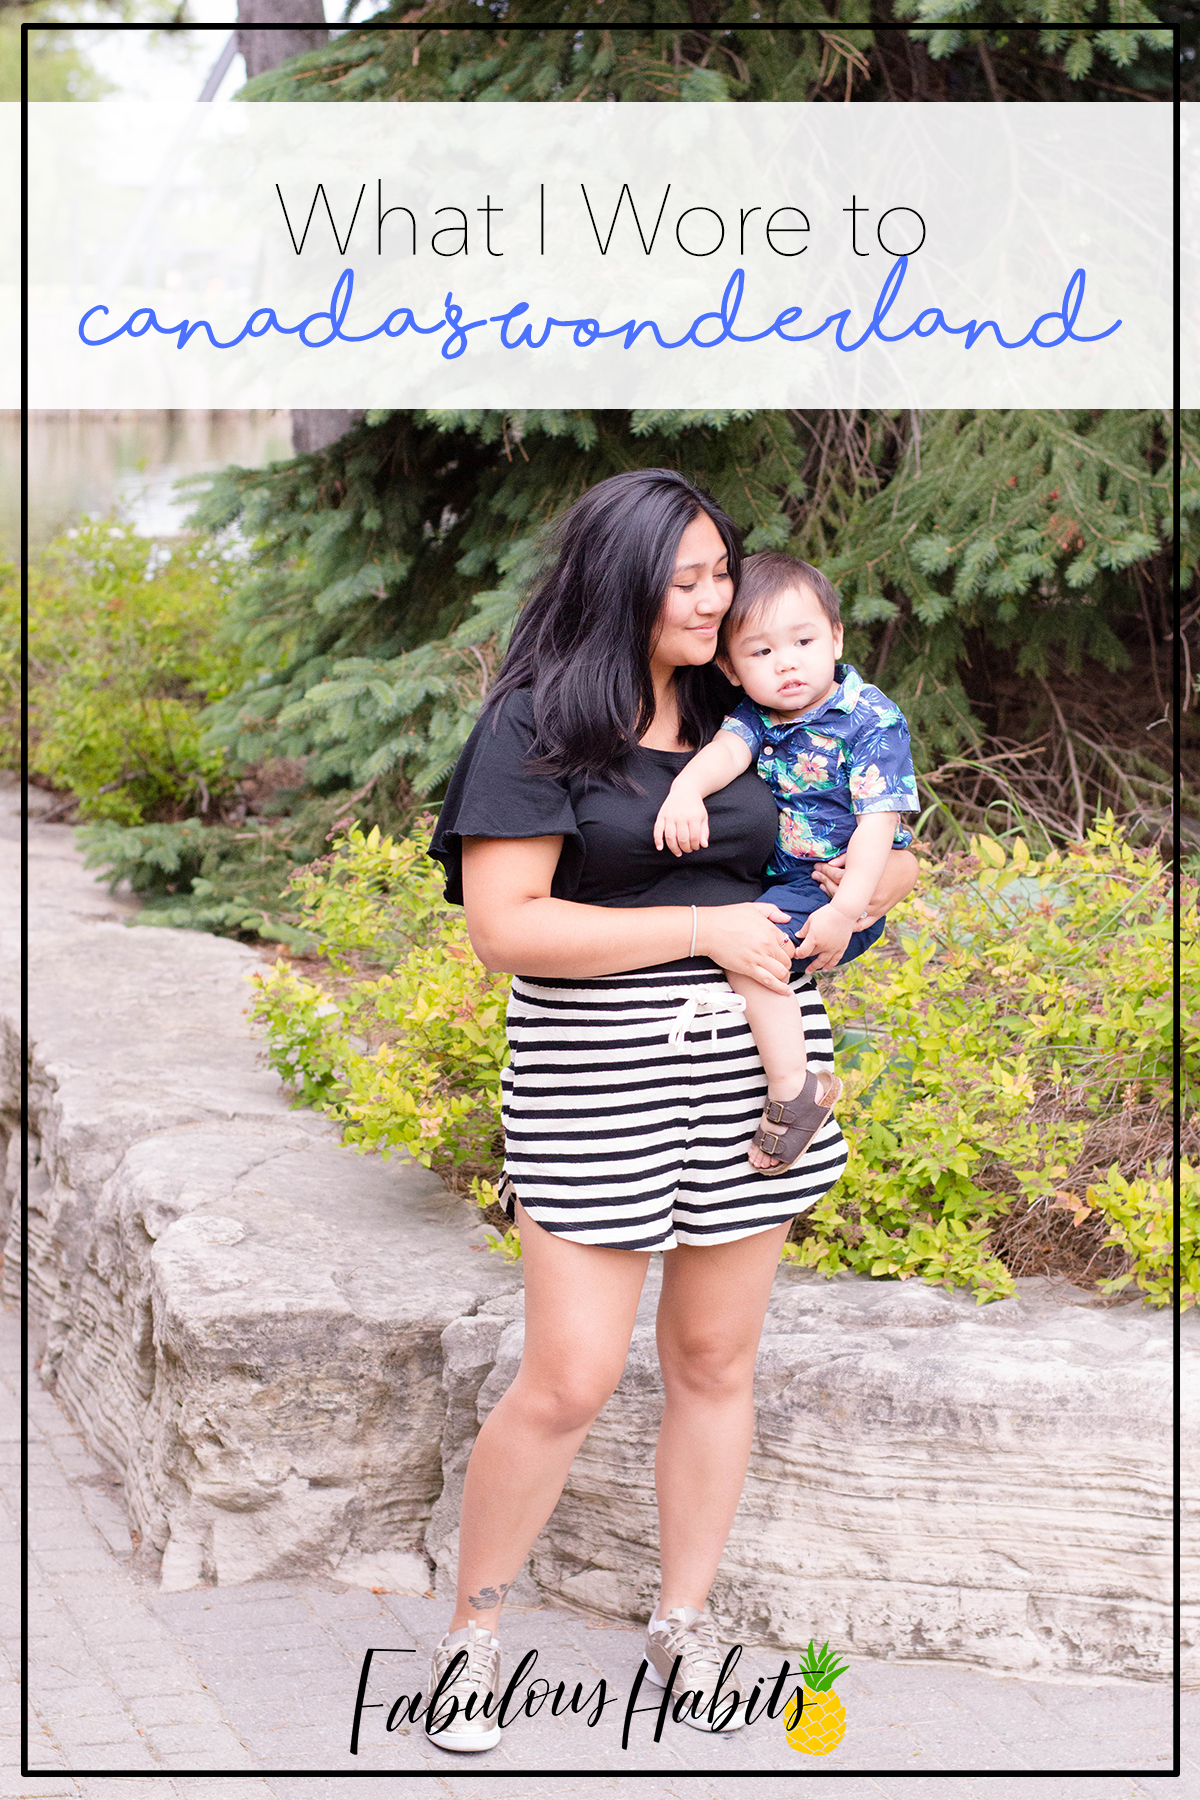 Stripes and gold for the win. Comfy, versatile, and ultra cute: this is what I wore to Canada's Wonderland. (P.S. Elastic-waist shorts for the win!)